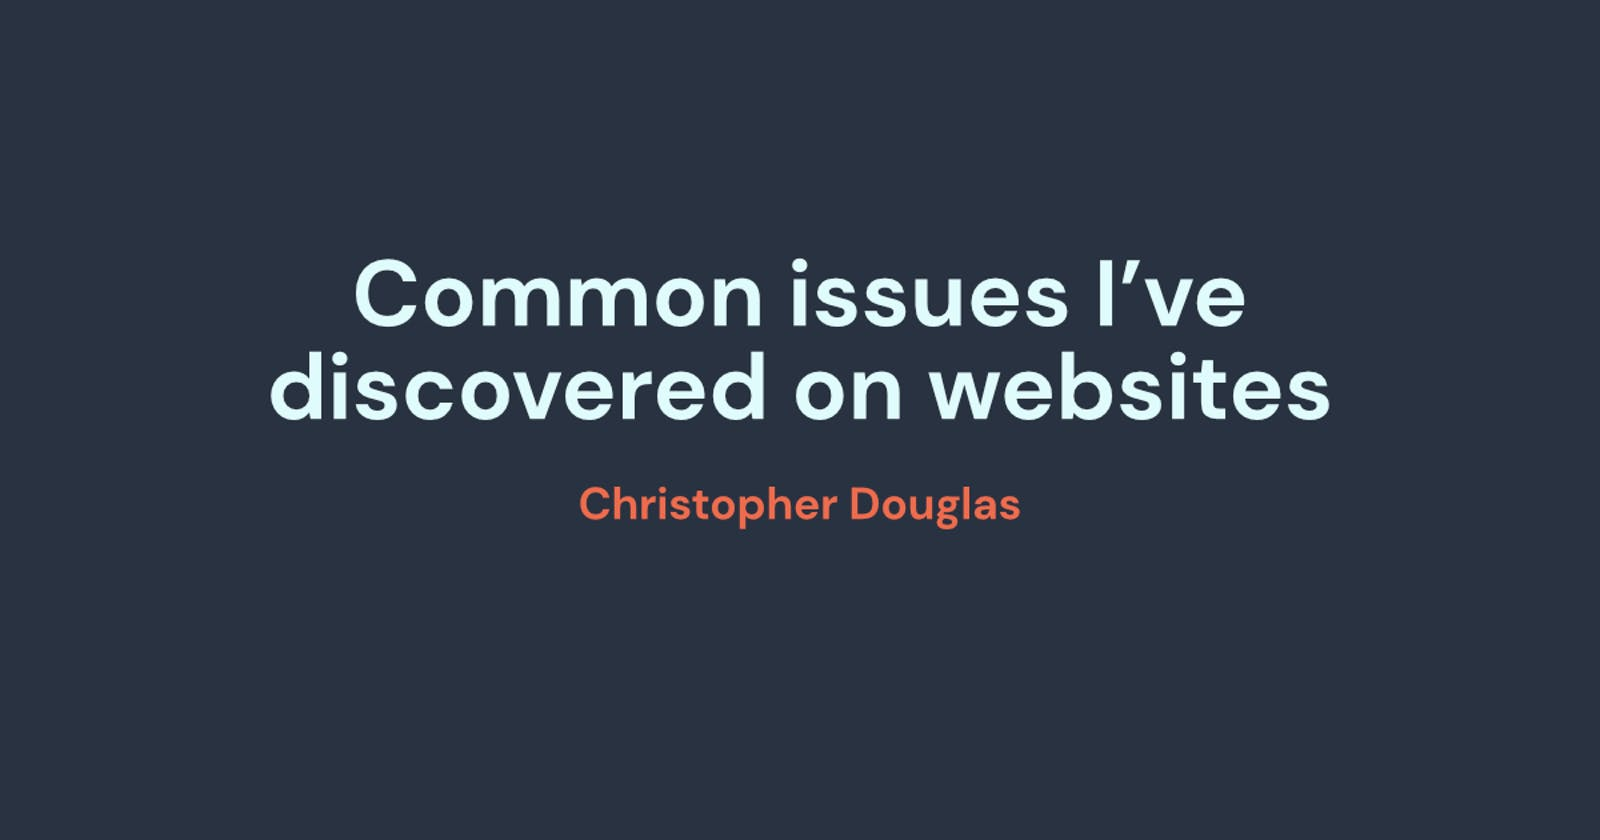 Common issues I've discovered on websites